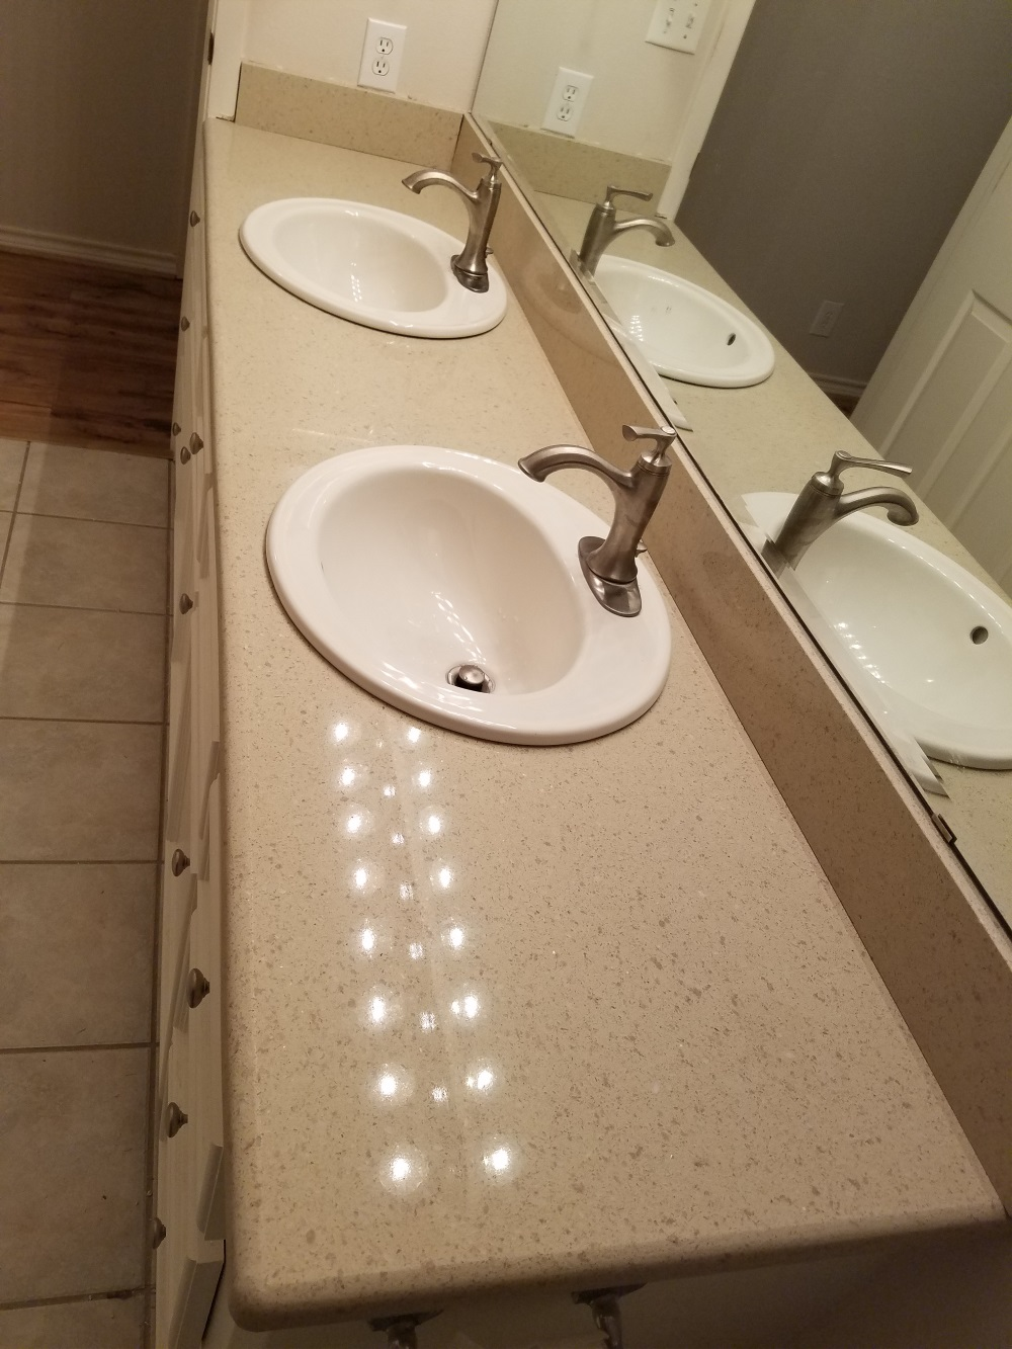 Two bathroom countertop replacement in magnolia texas for Replace bathroom countertop